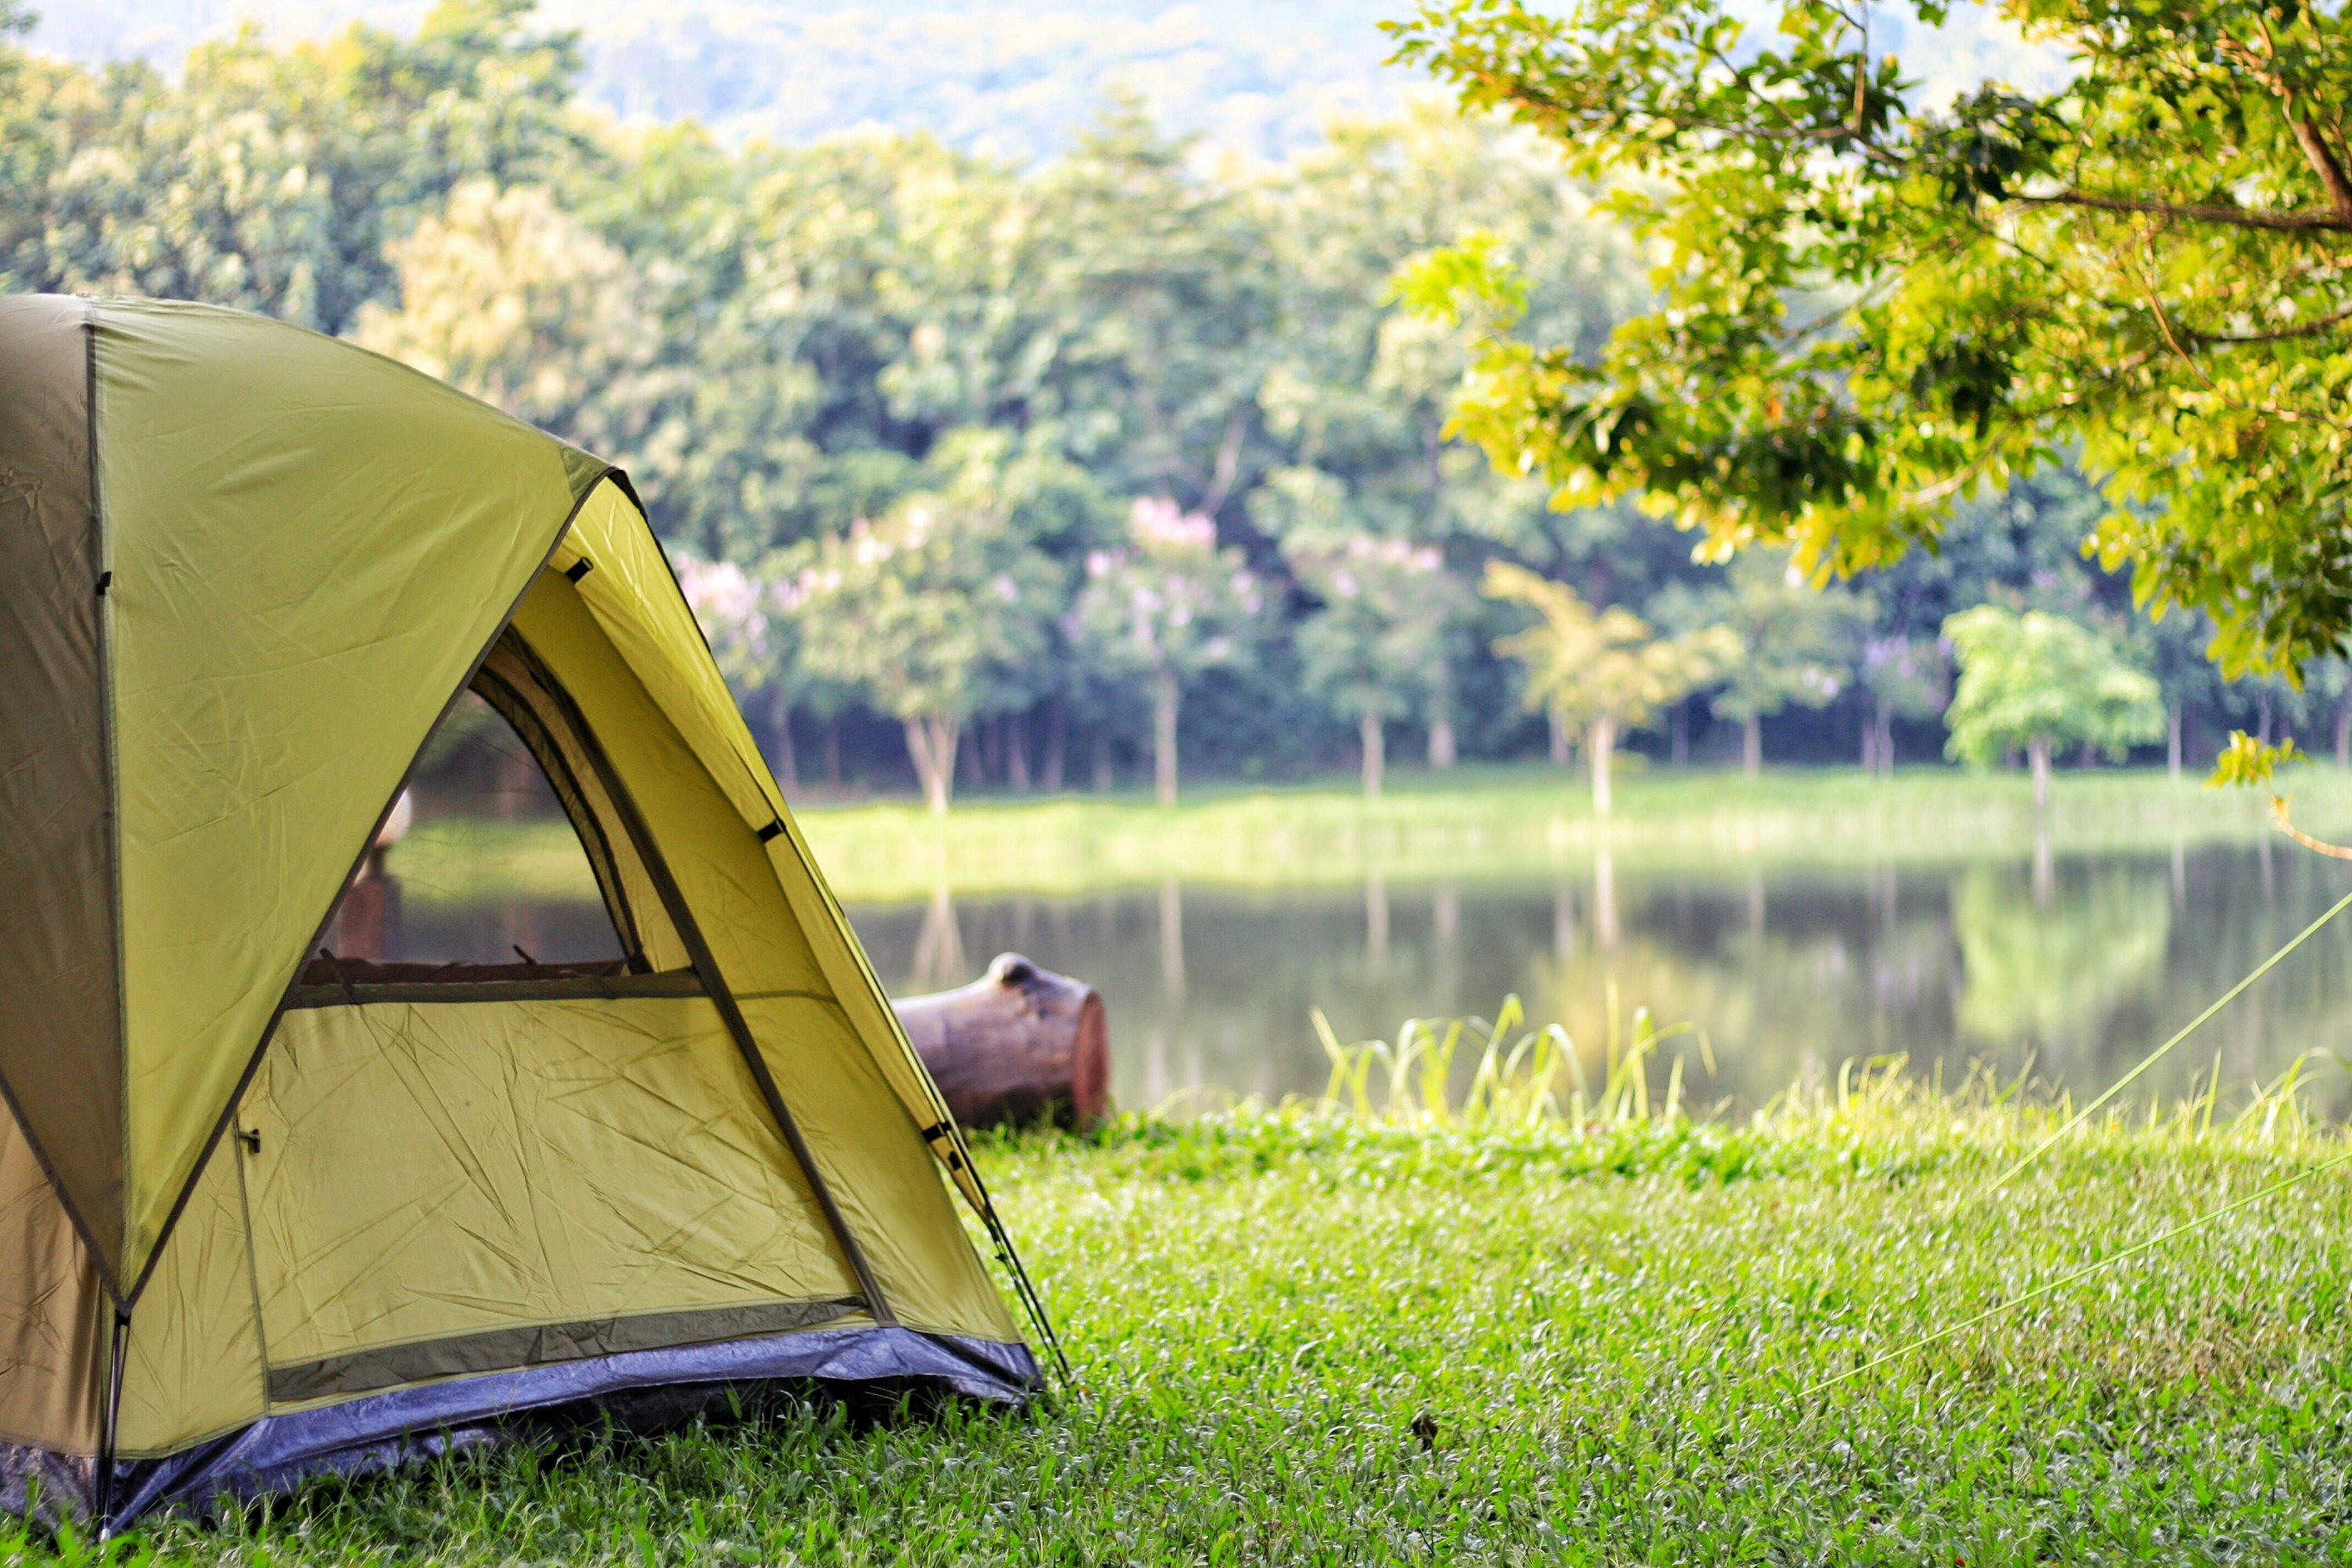 Camping is one of the most popular outdoor activities. (Shutterstock Photo)